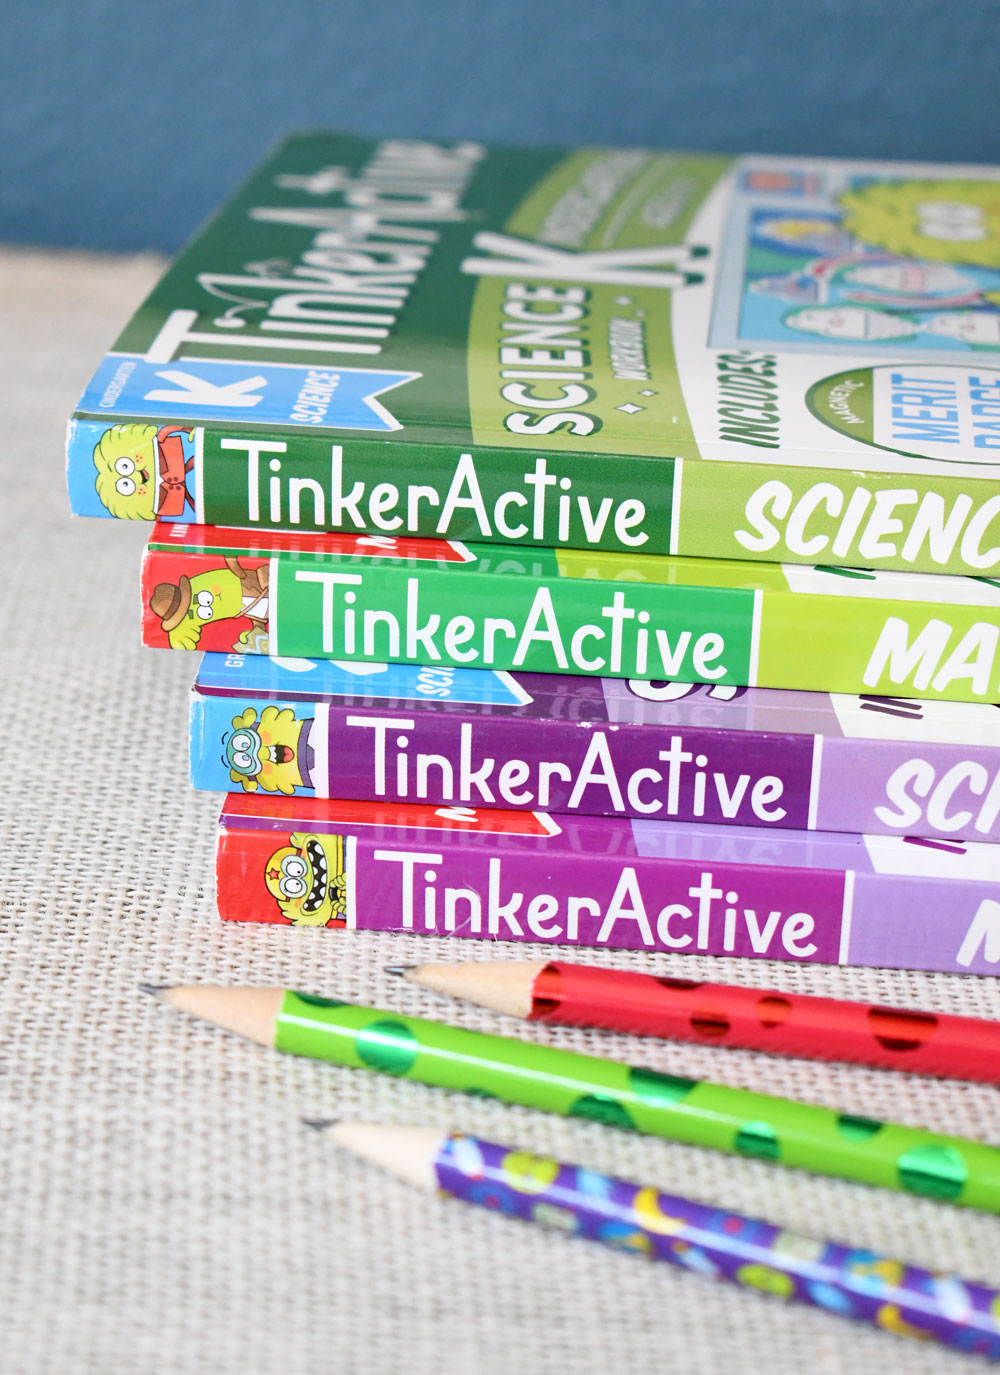 TinkerActive kids workbooks for science and math concepts